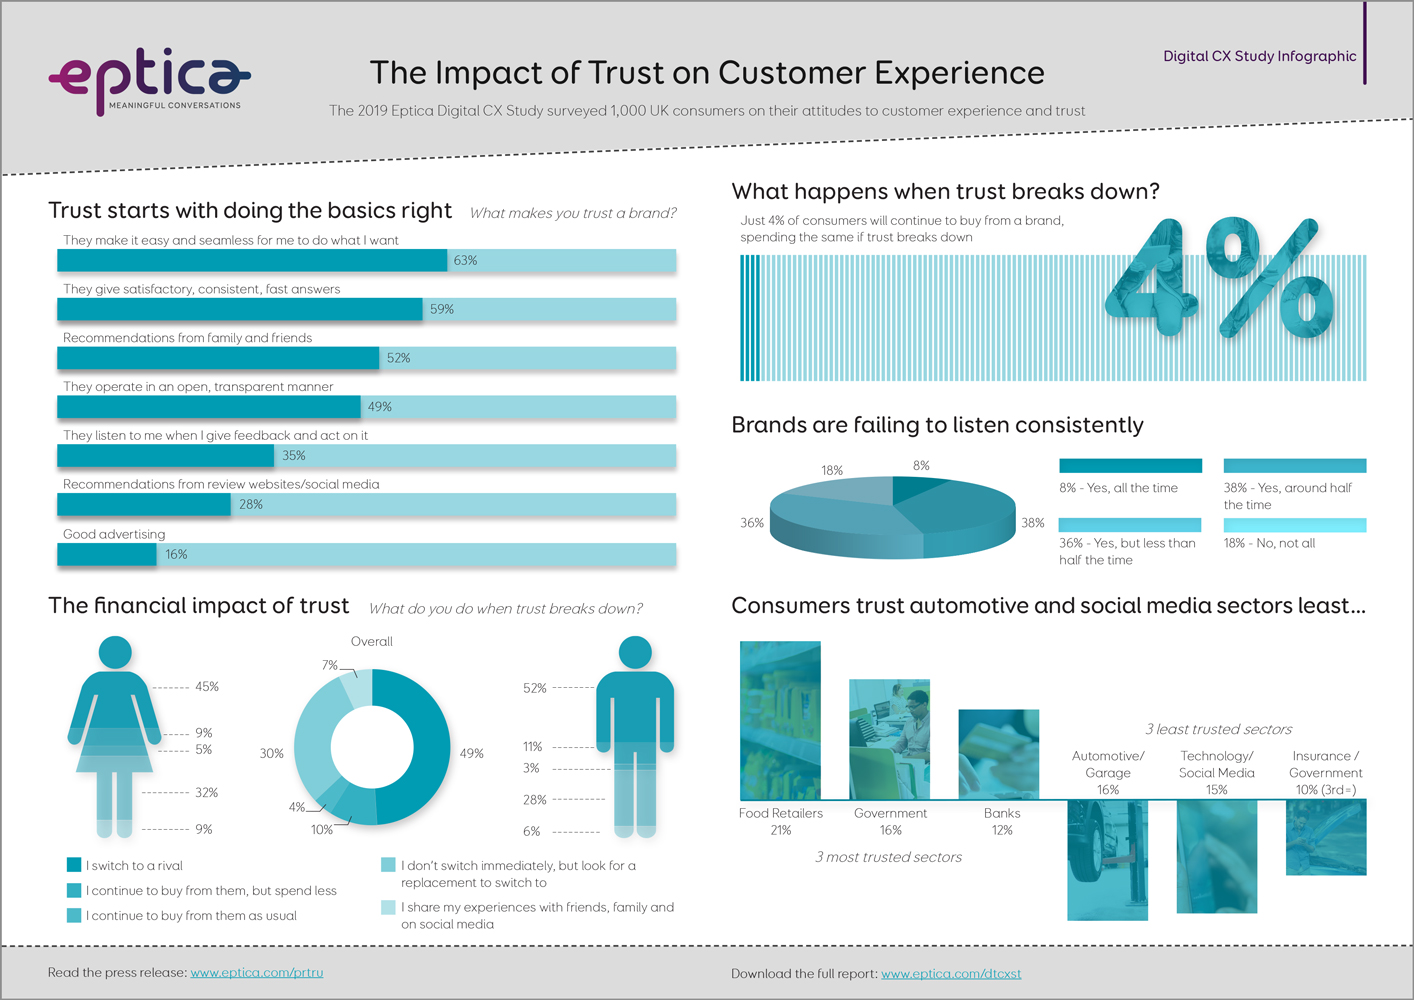 Eptica Infographic Improving Customer Experience Through Automation